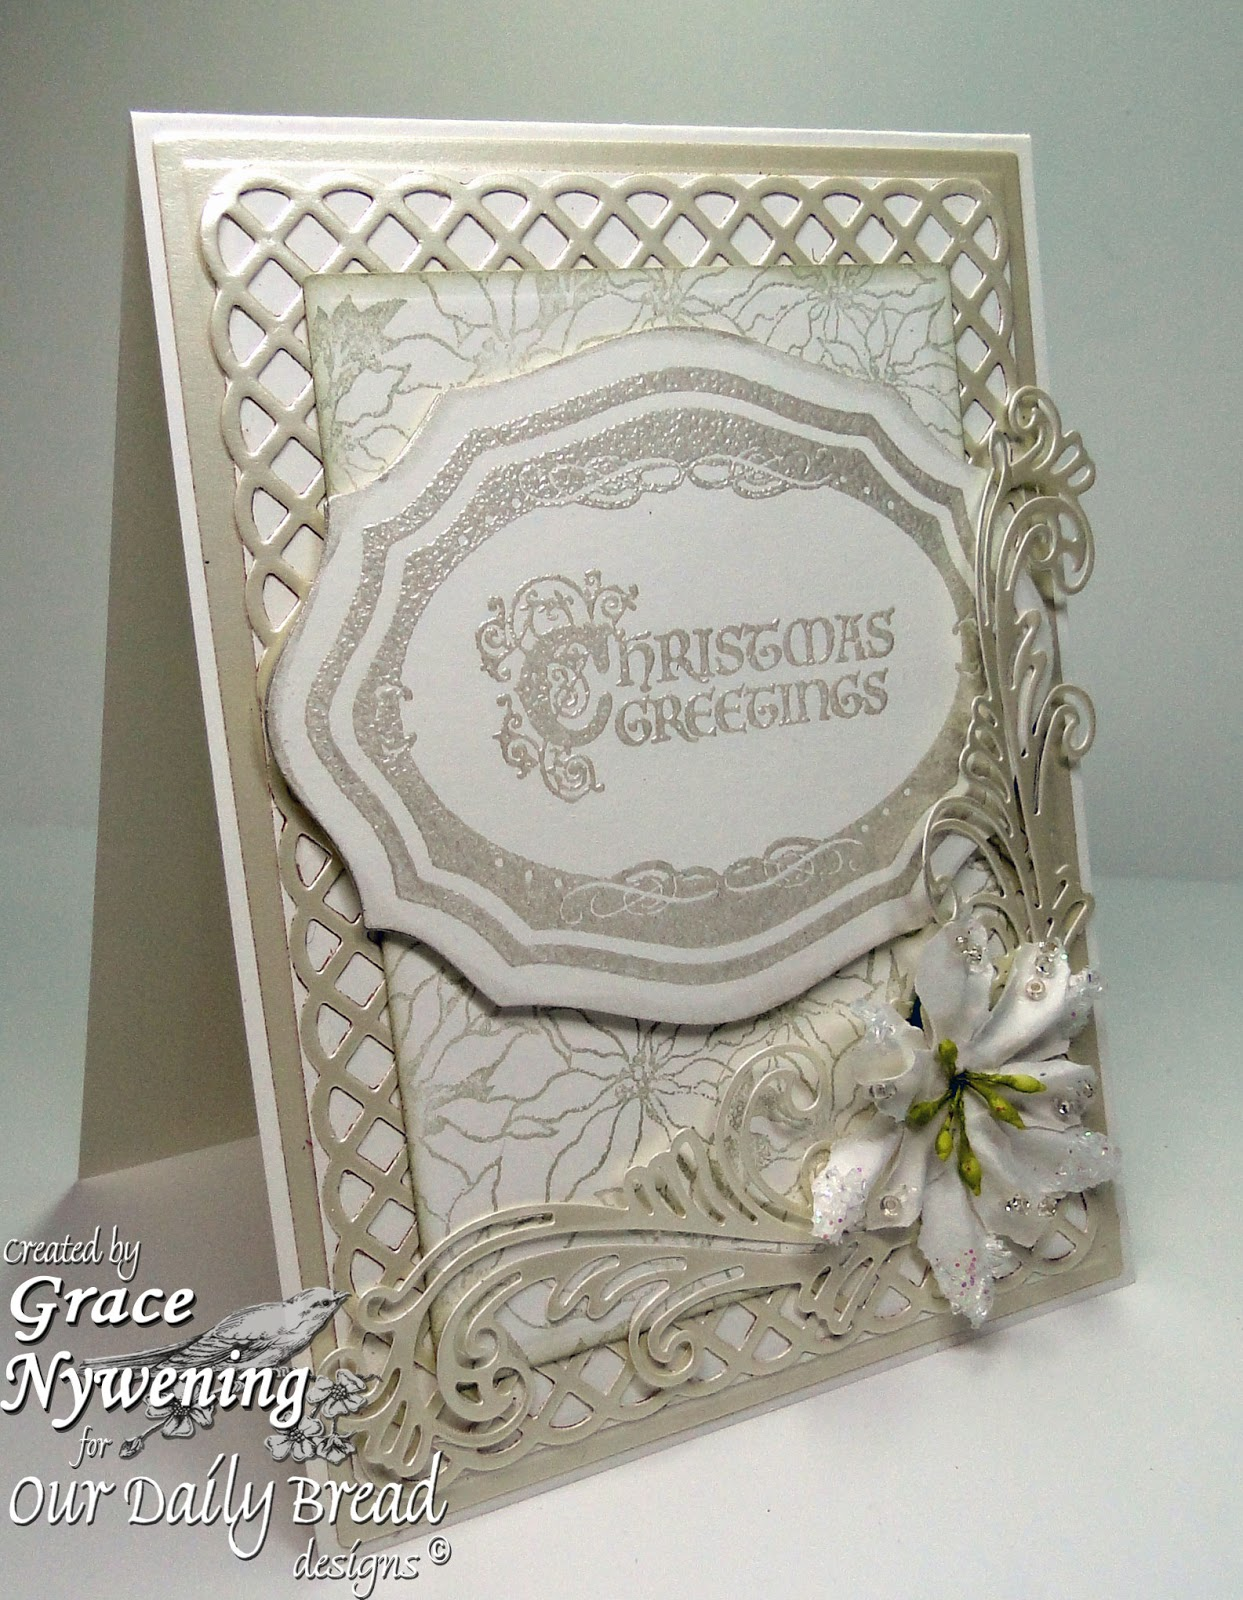 Th ink ing of you christmas greetings on the elegant side for Elegant christmas card messages